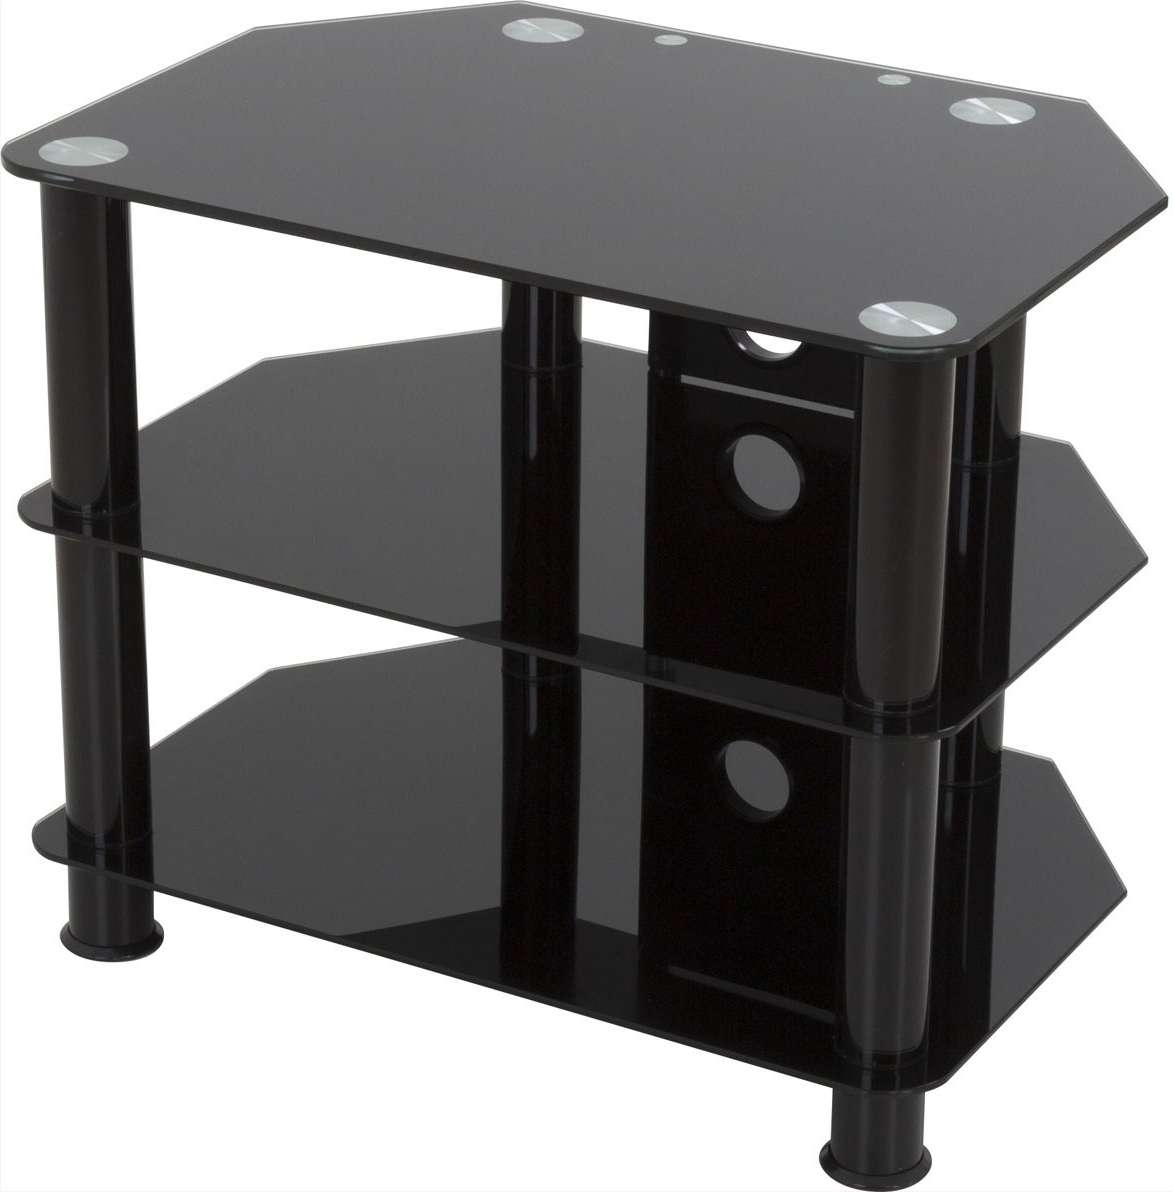 Avf Sdc600Cmbb Tv Stands With Black Glass Tv Stands (View 3 of 15)